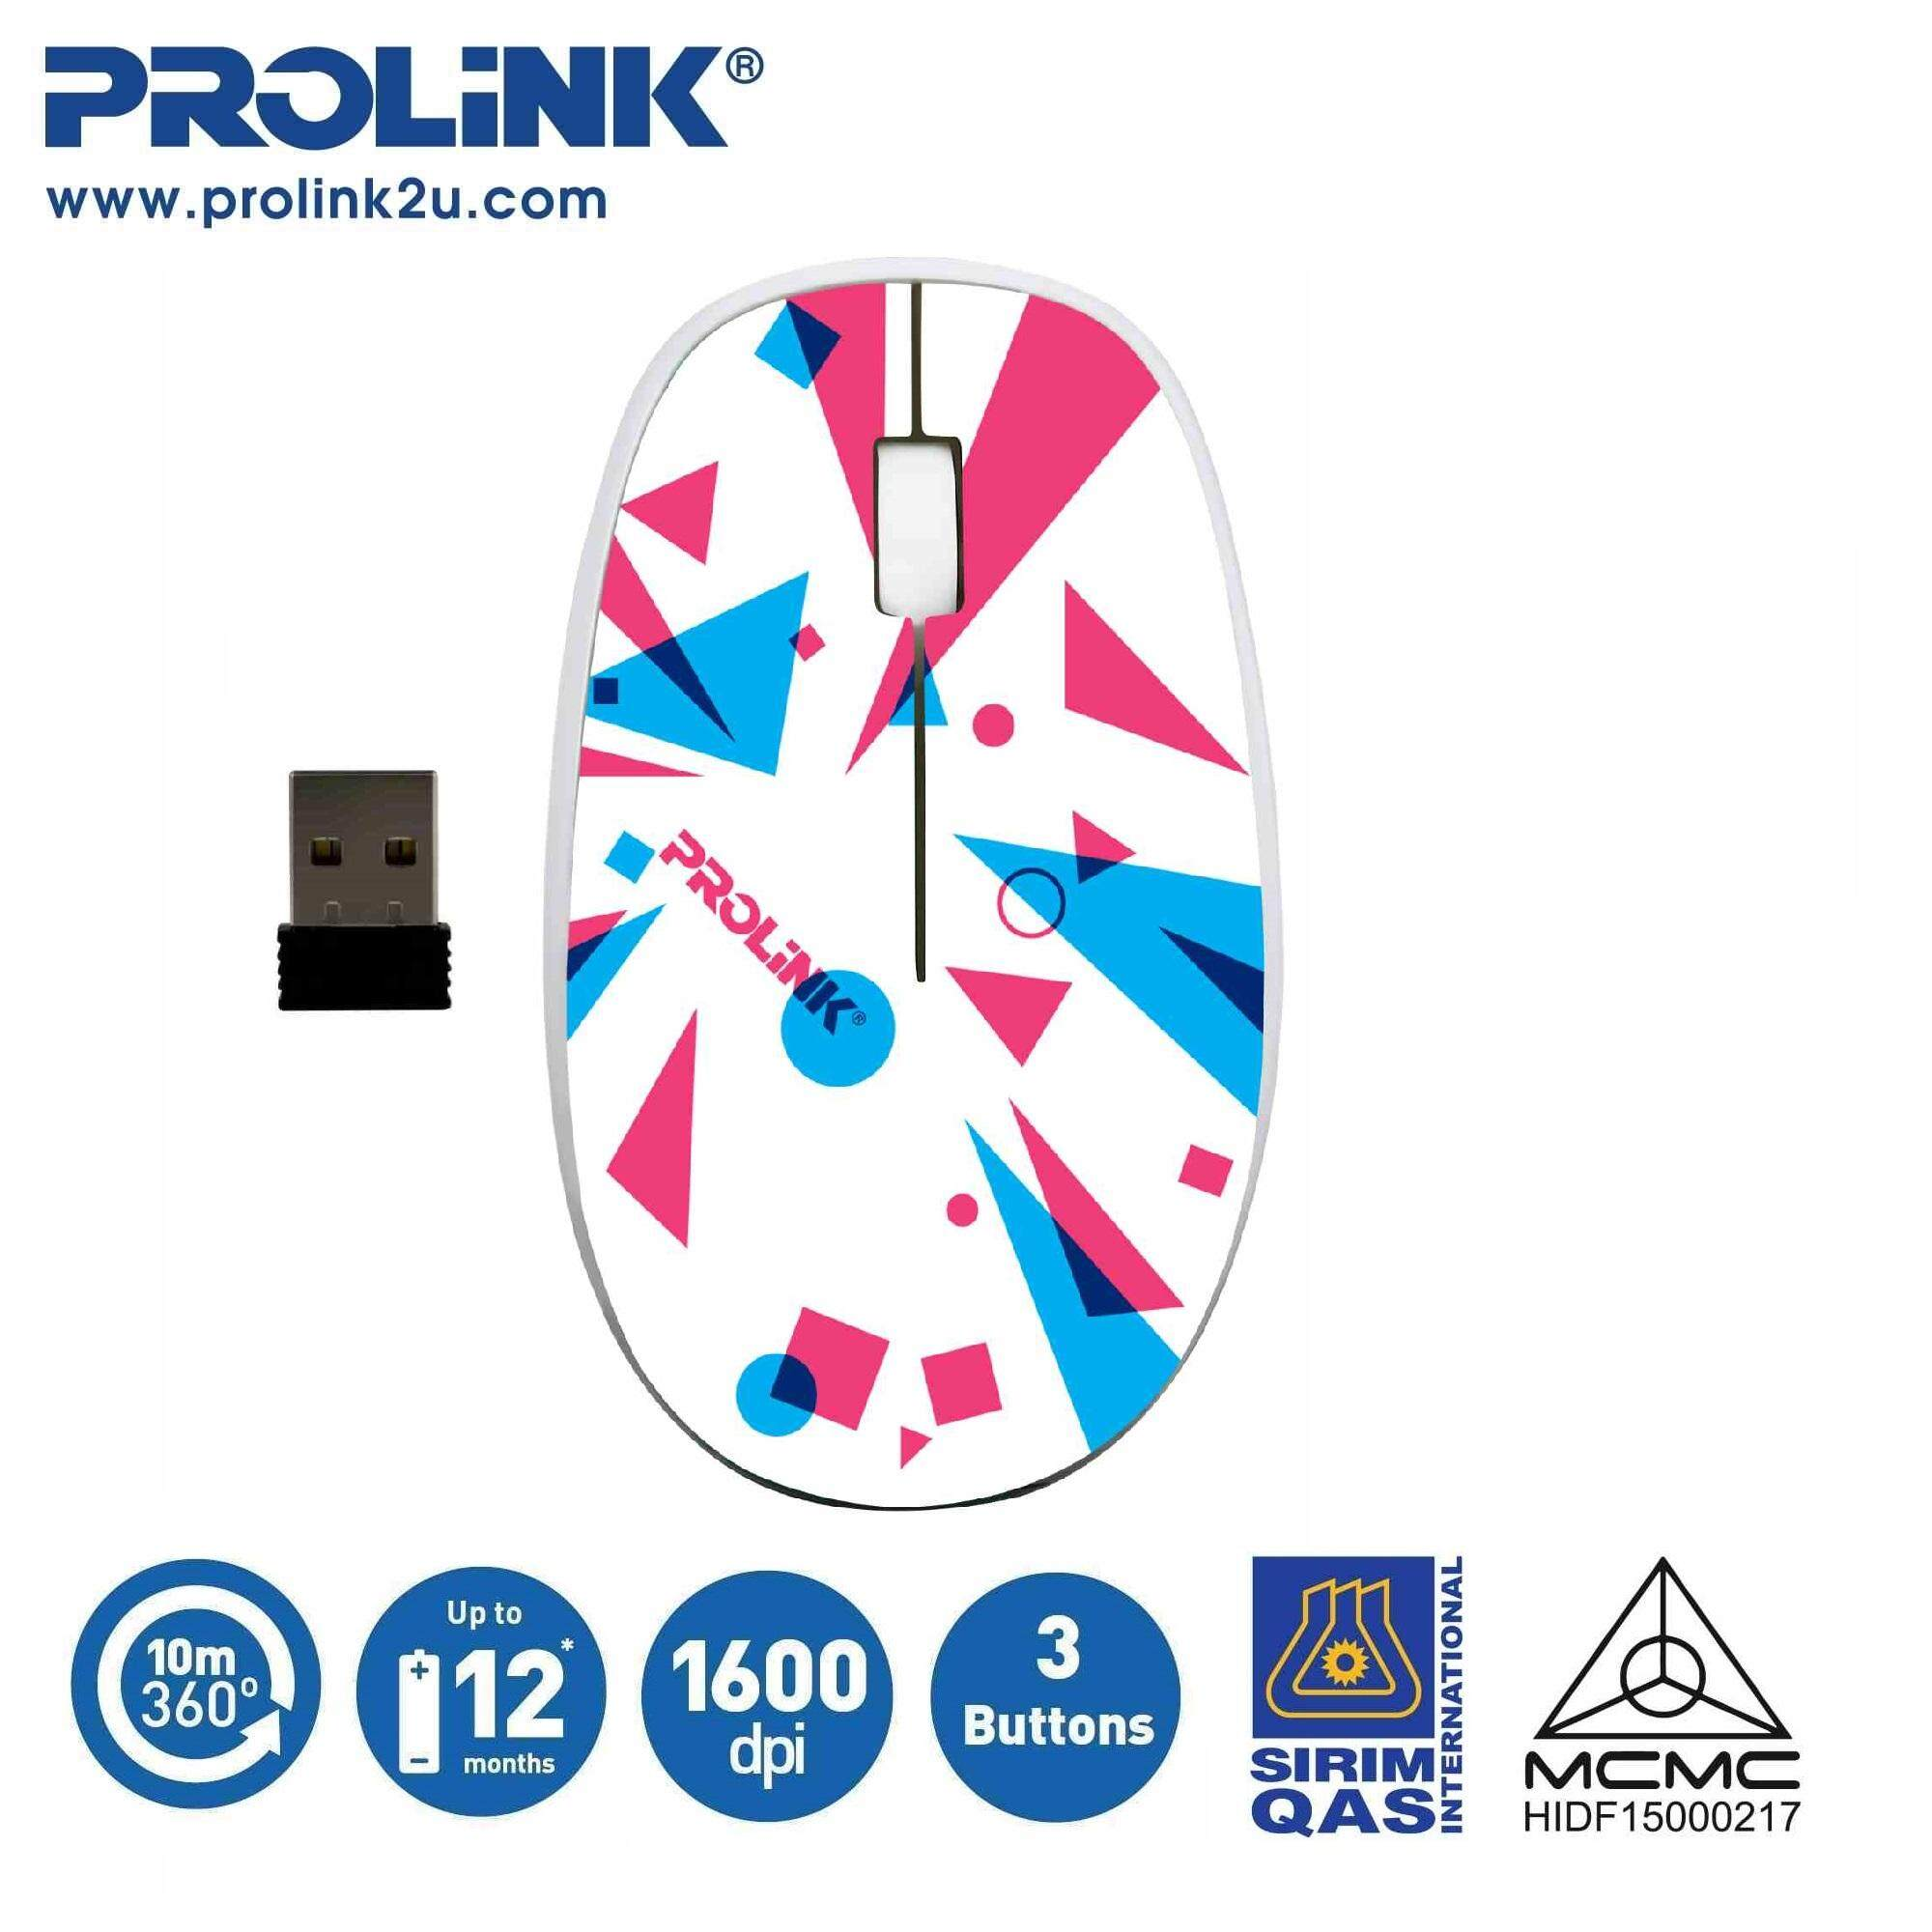 PROLiNK Wireless Optical Mouse with On/Off Switch FREE 1 x AA Battery (2018 World-Cup & Artistic Limited Edition) PMW5007 (Sirim approval / Comply with MCMC requirement) Malaysia